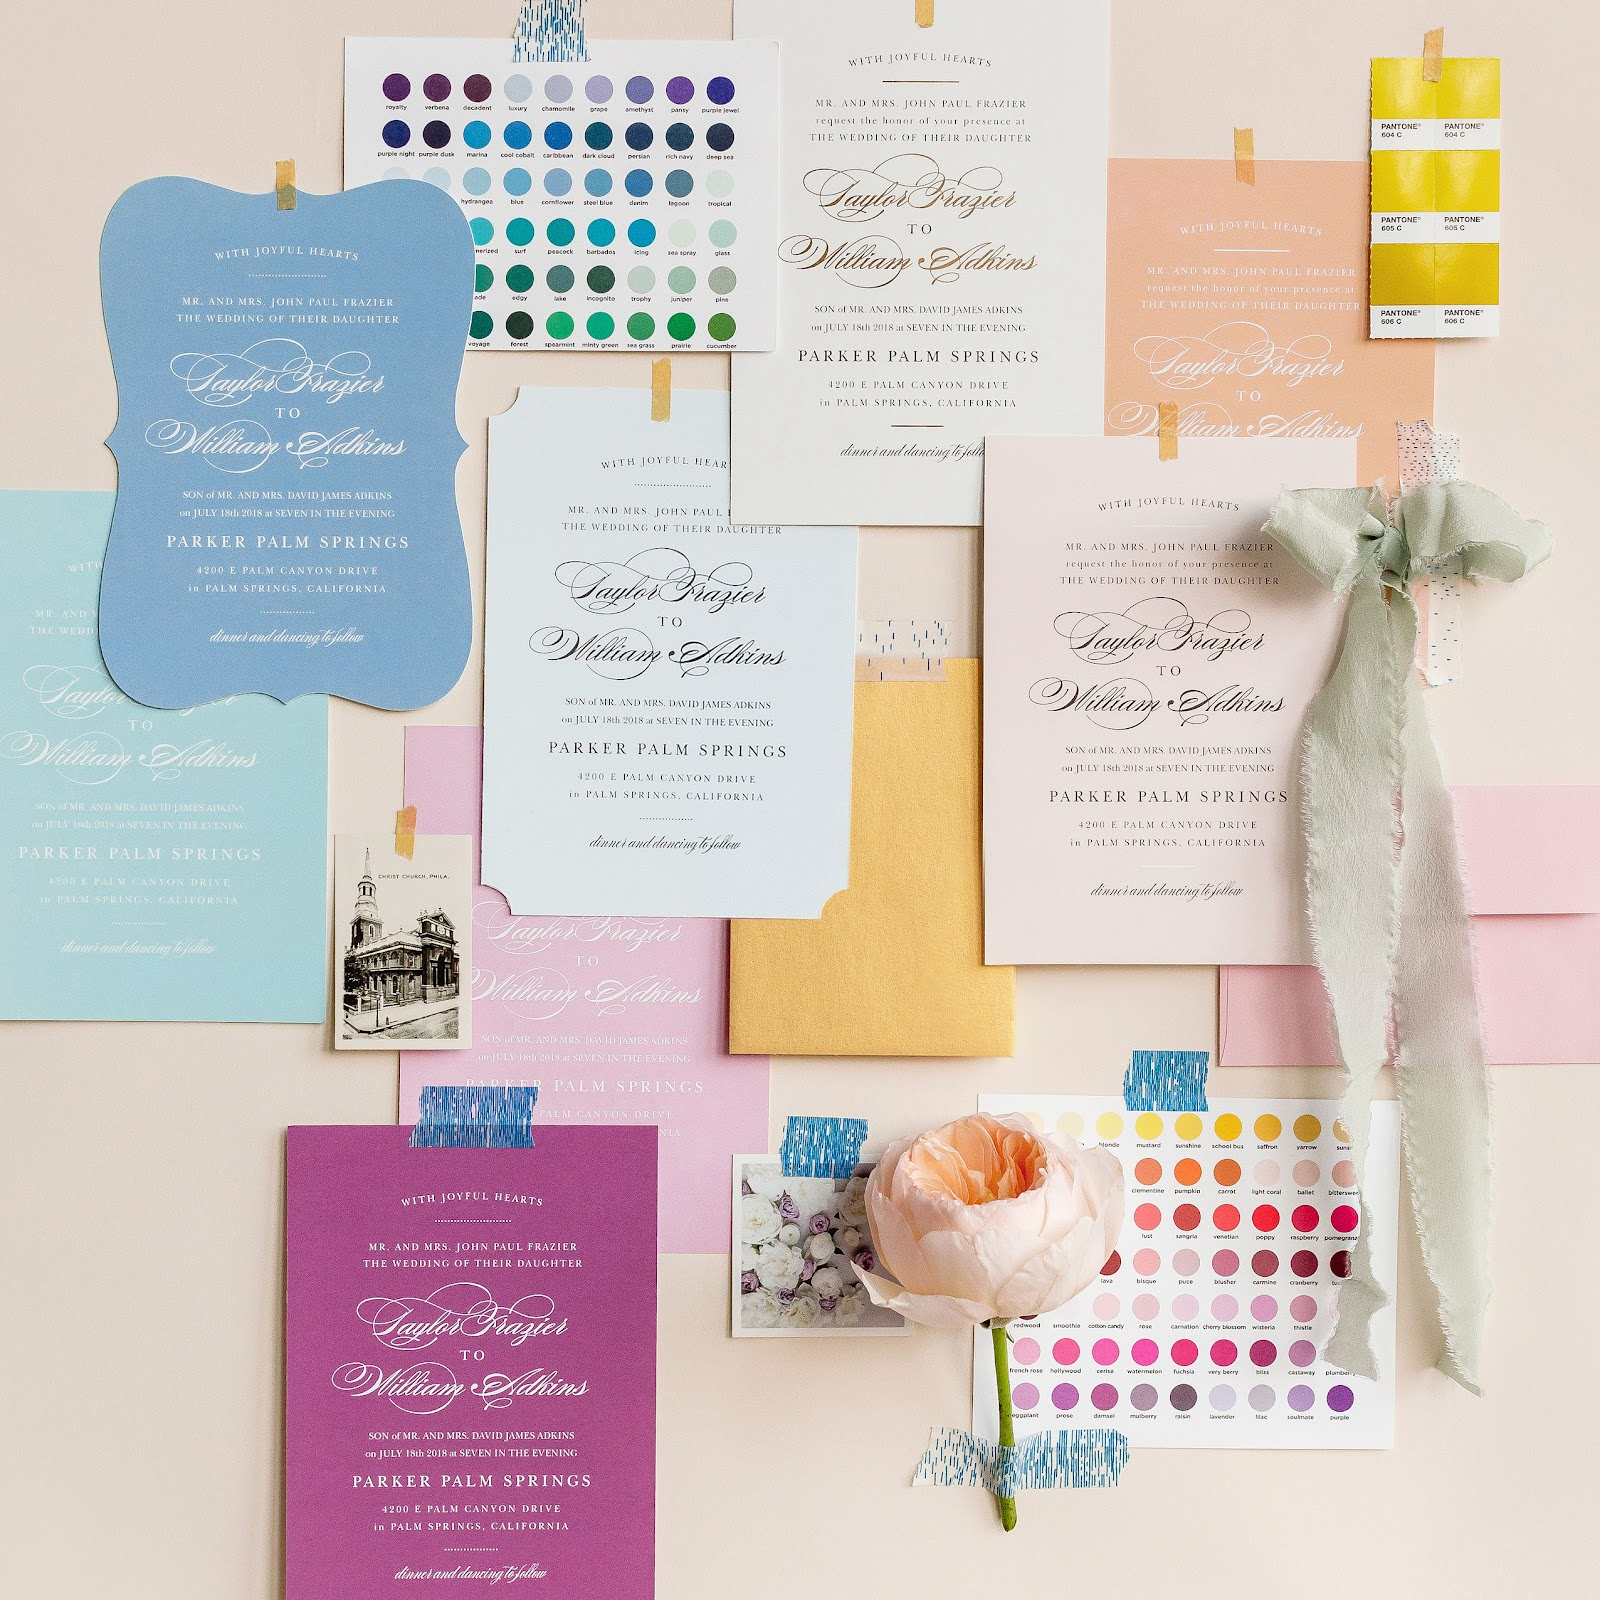 Inspiration board with wedding invitations, color palettes, ribbons and envelopes.